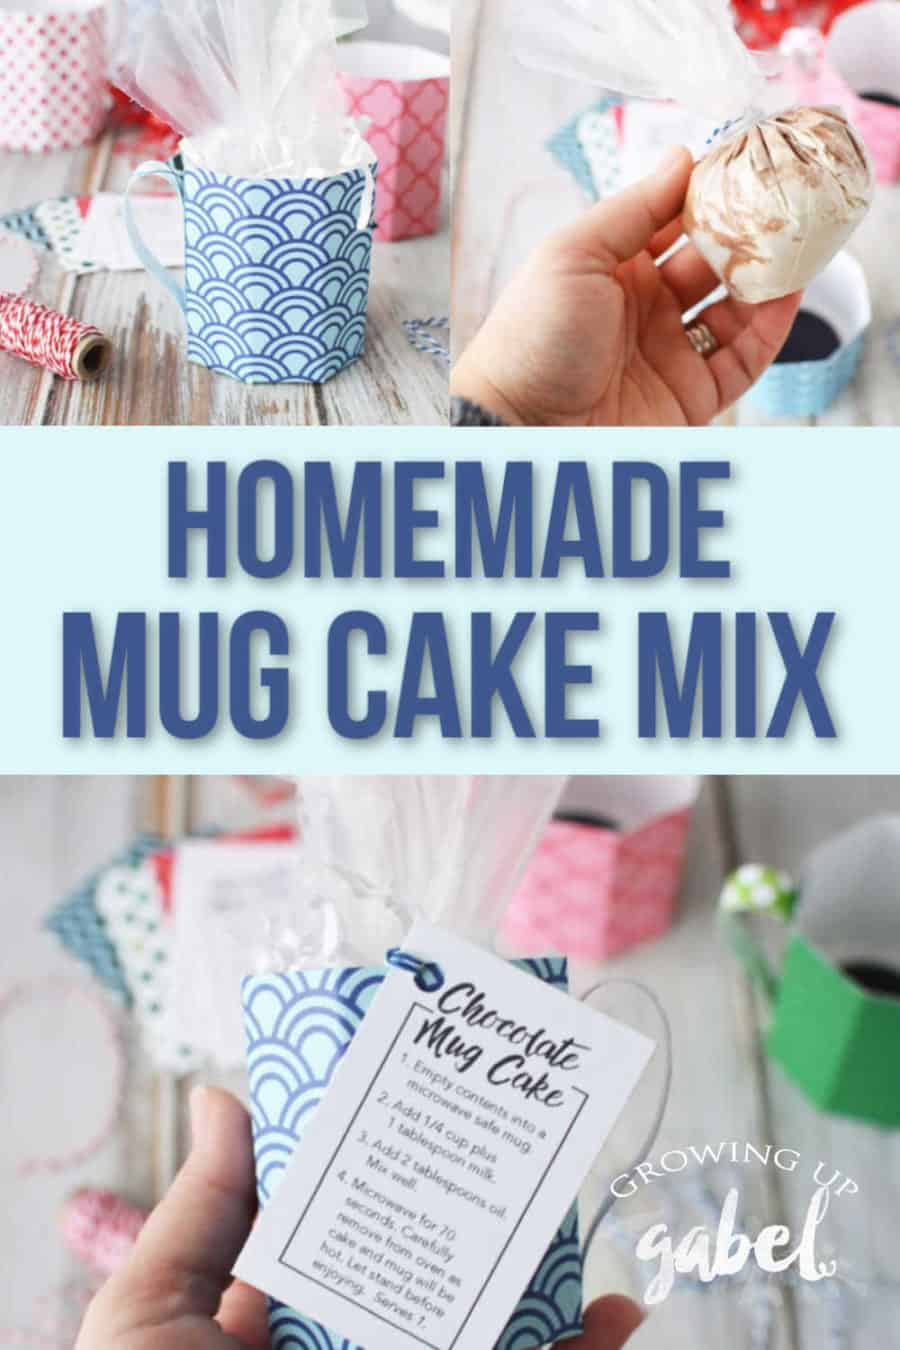 Homemade Mug Cake Recipe In Paper Mugs Growing Up Gabel